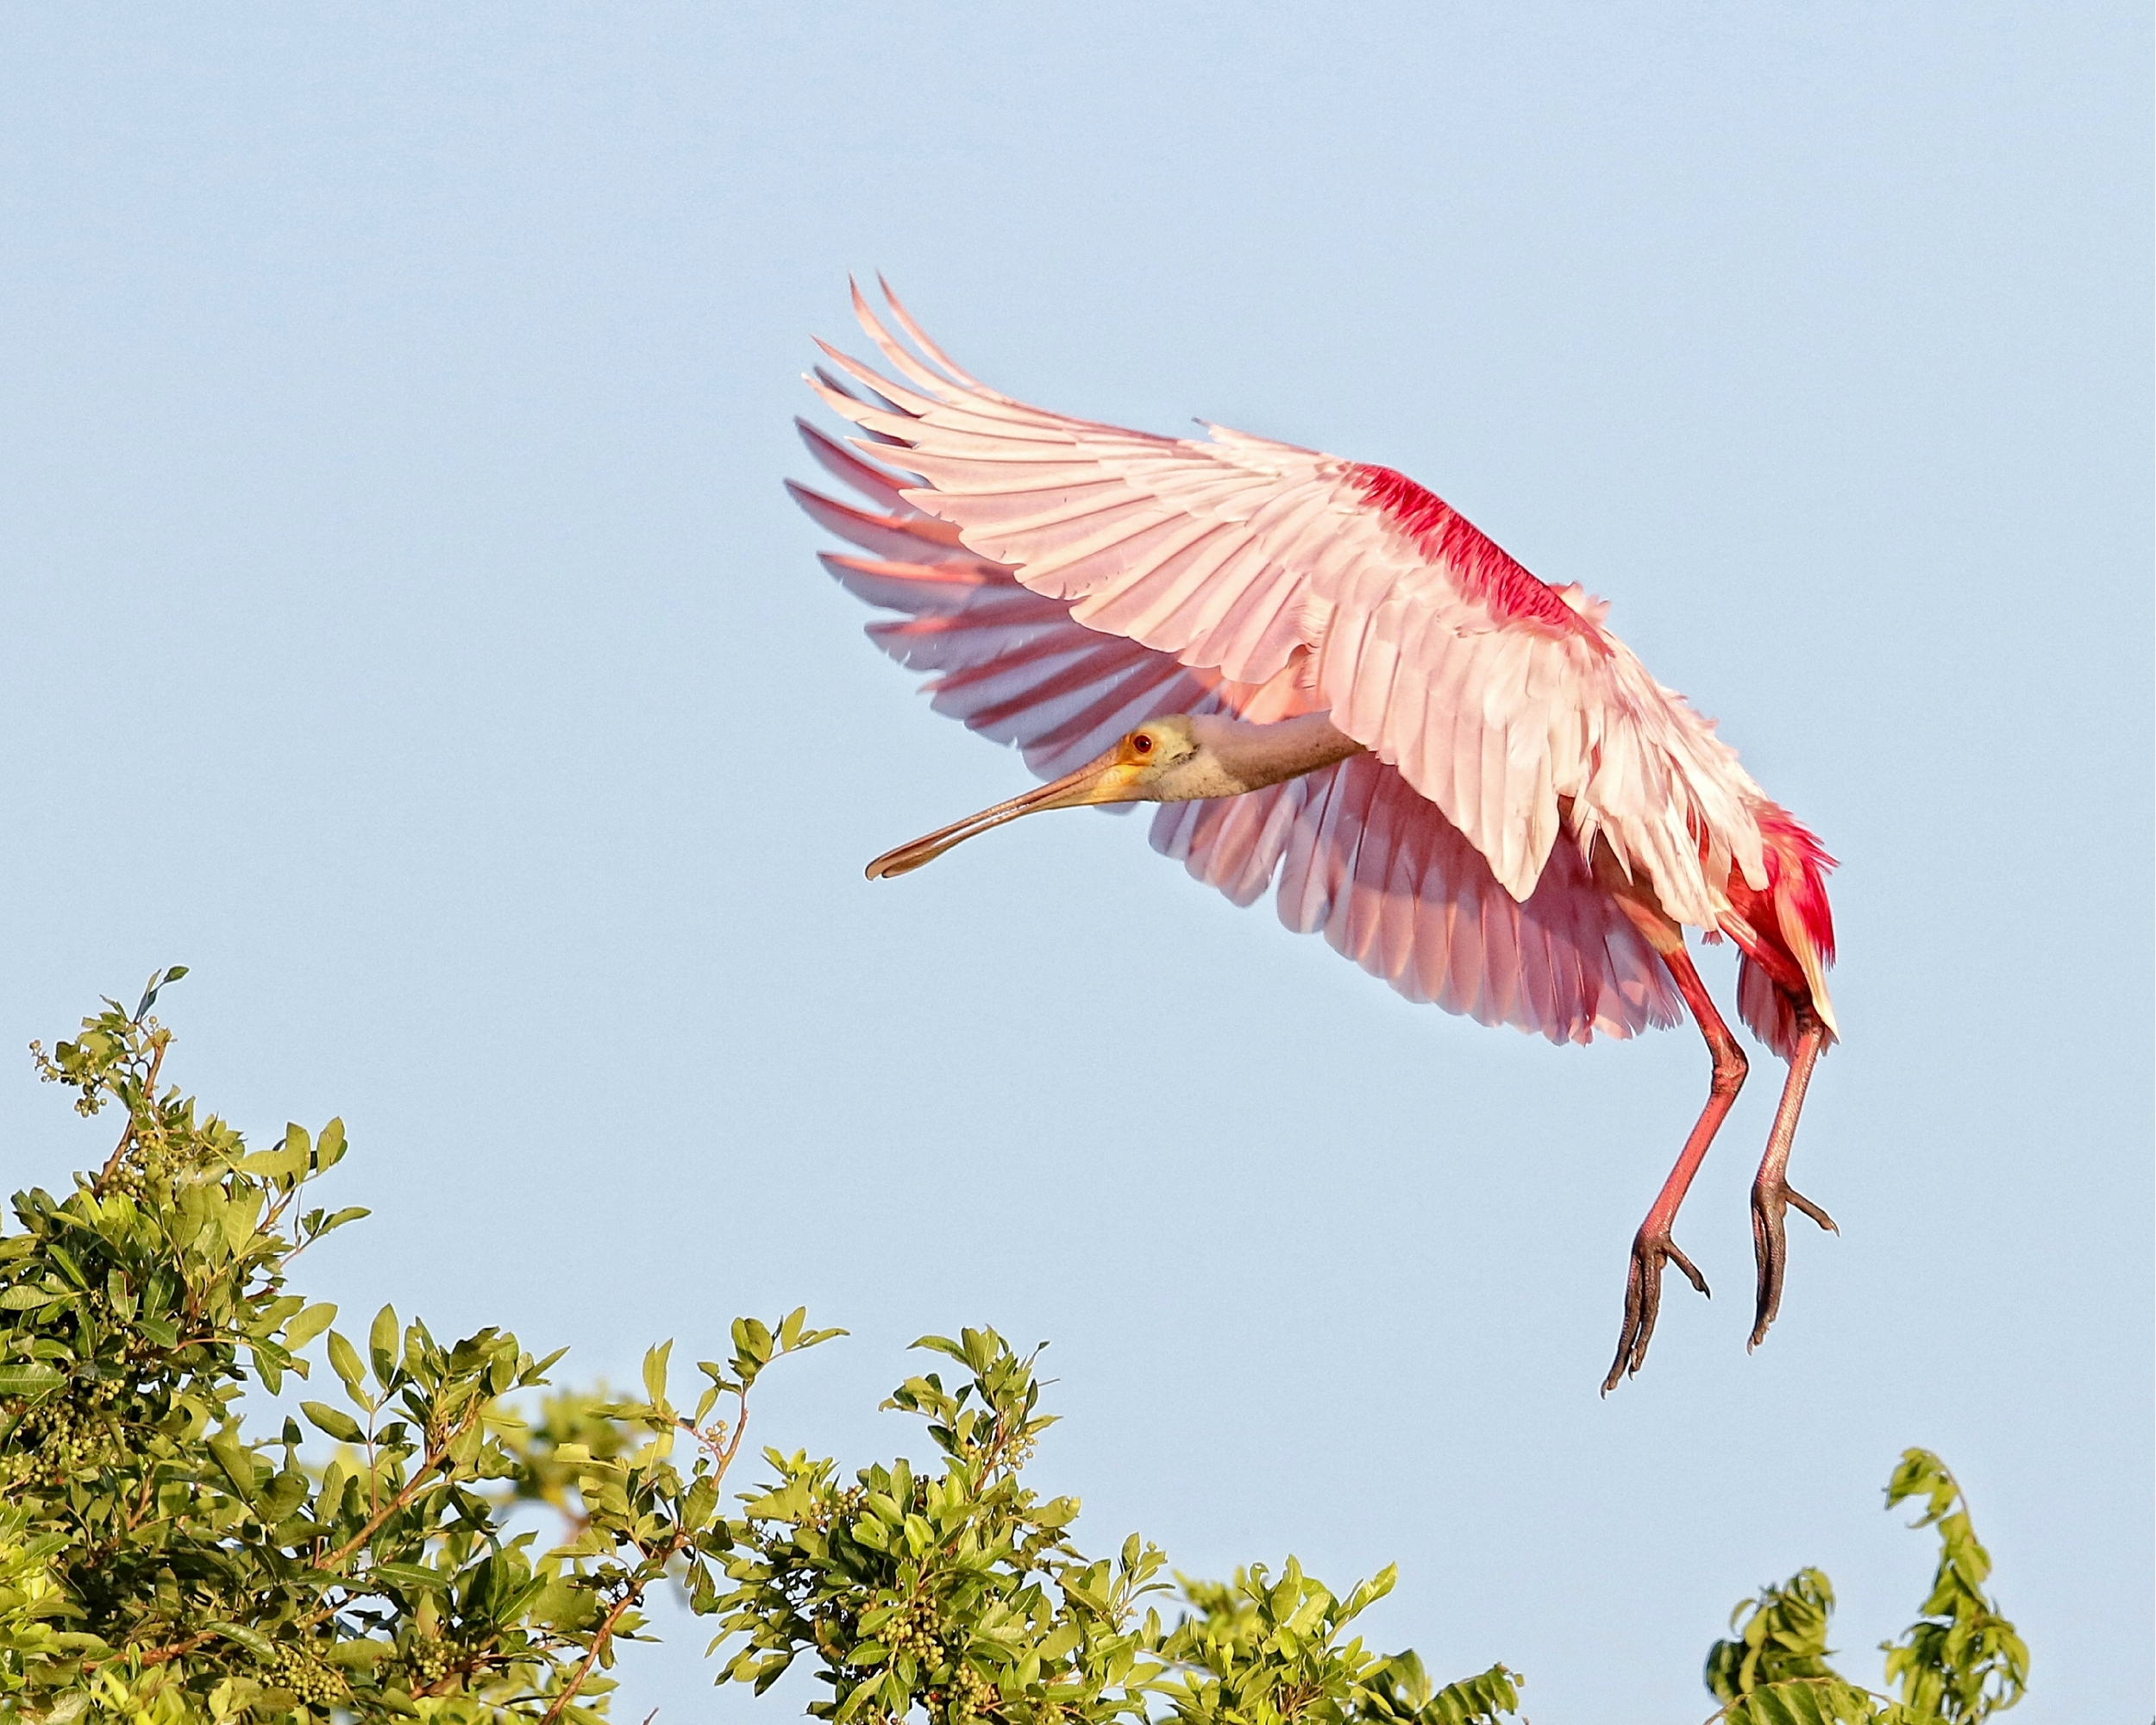 The Spoonbill spots an open branch for landing and spreads its wings..